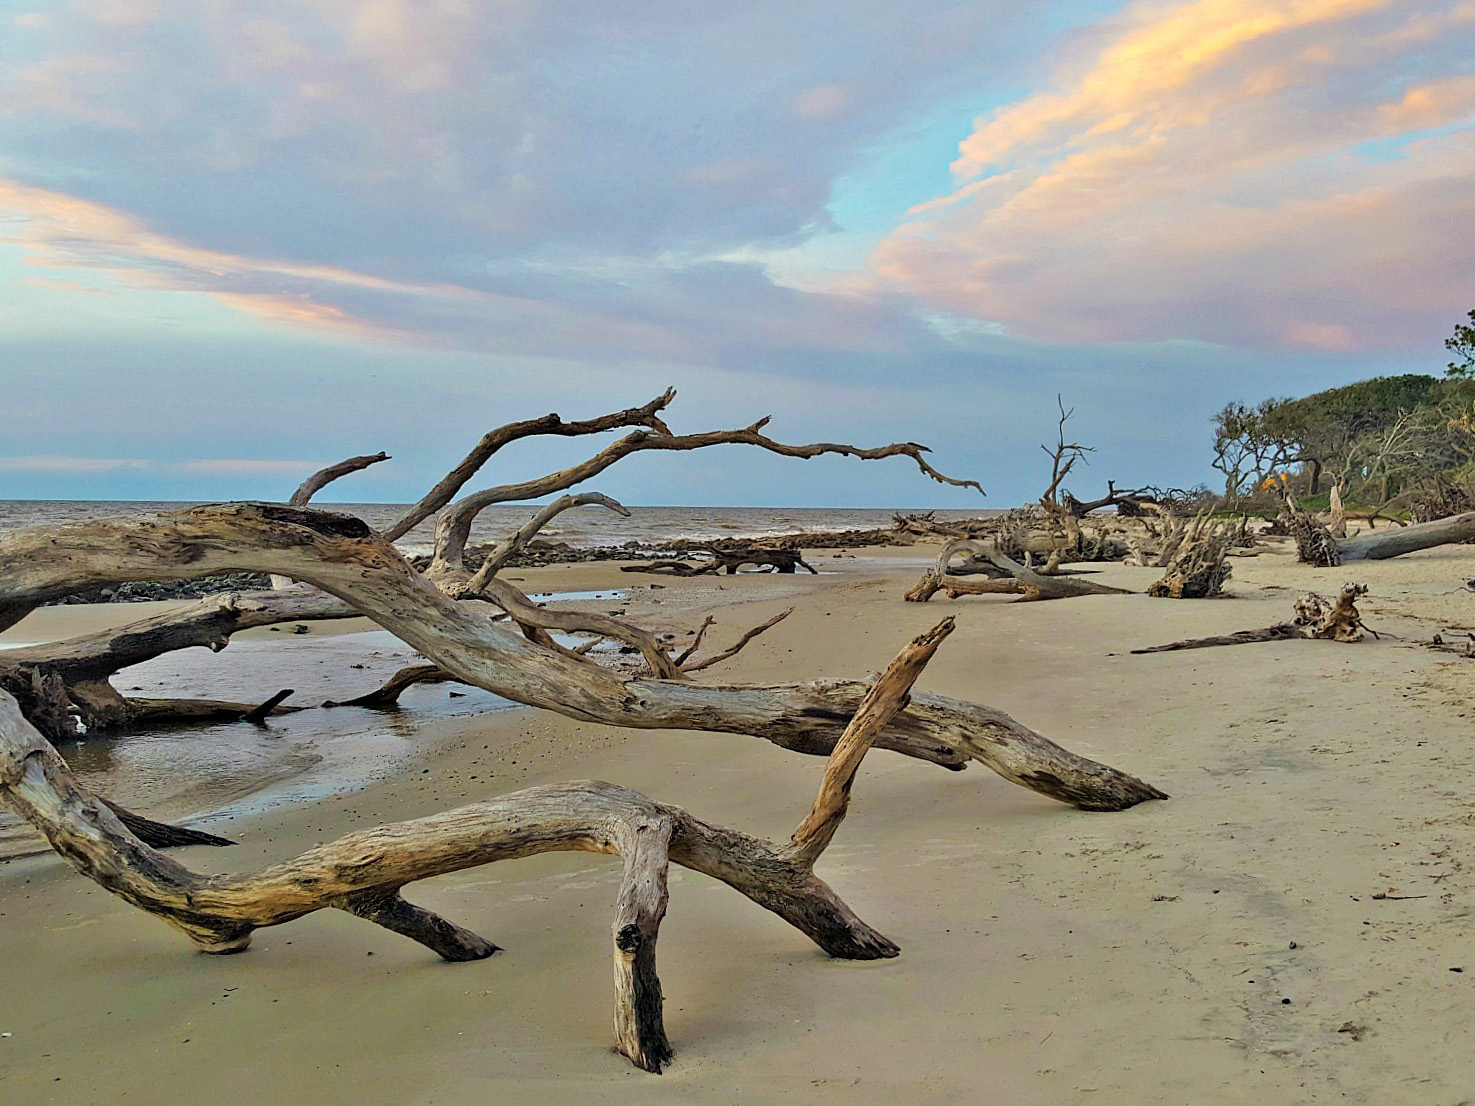 Sunrise at Boneyard Beach at Big Talbot State Park, Florida.